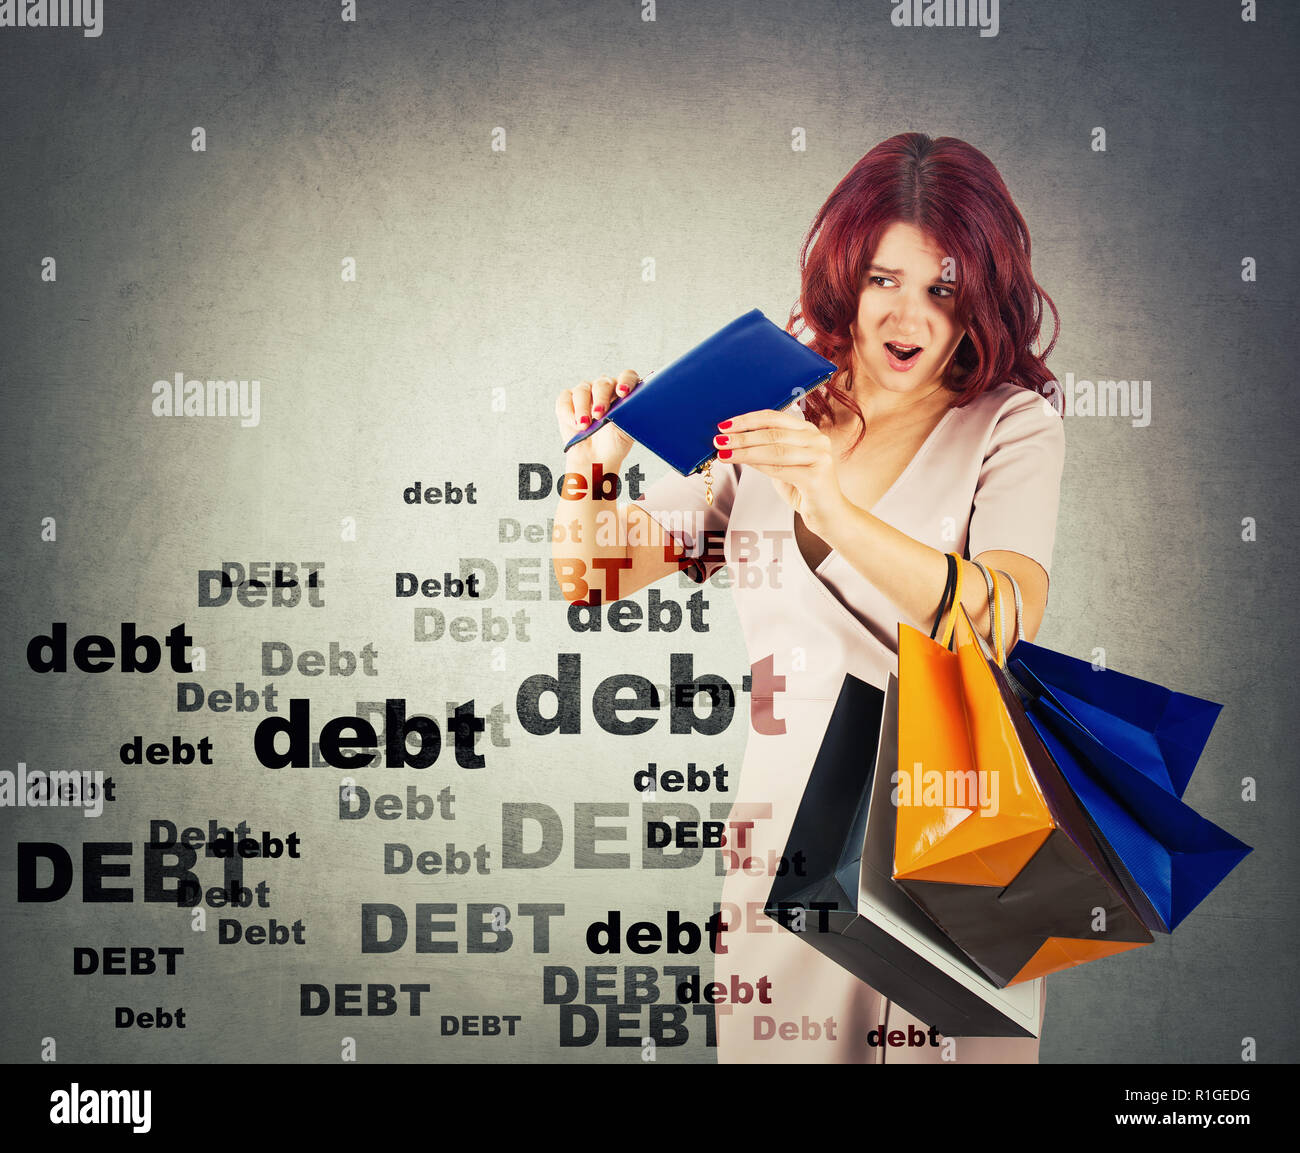 Surprised and disappointed young woman has a empty wallet, overspending money on shopping. Shocked about huge debt amount. Sale season shopaholic prob - Stock Image